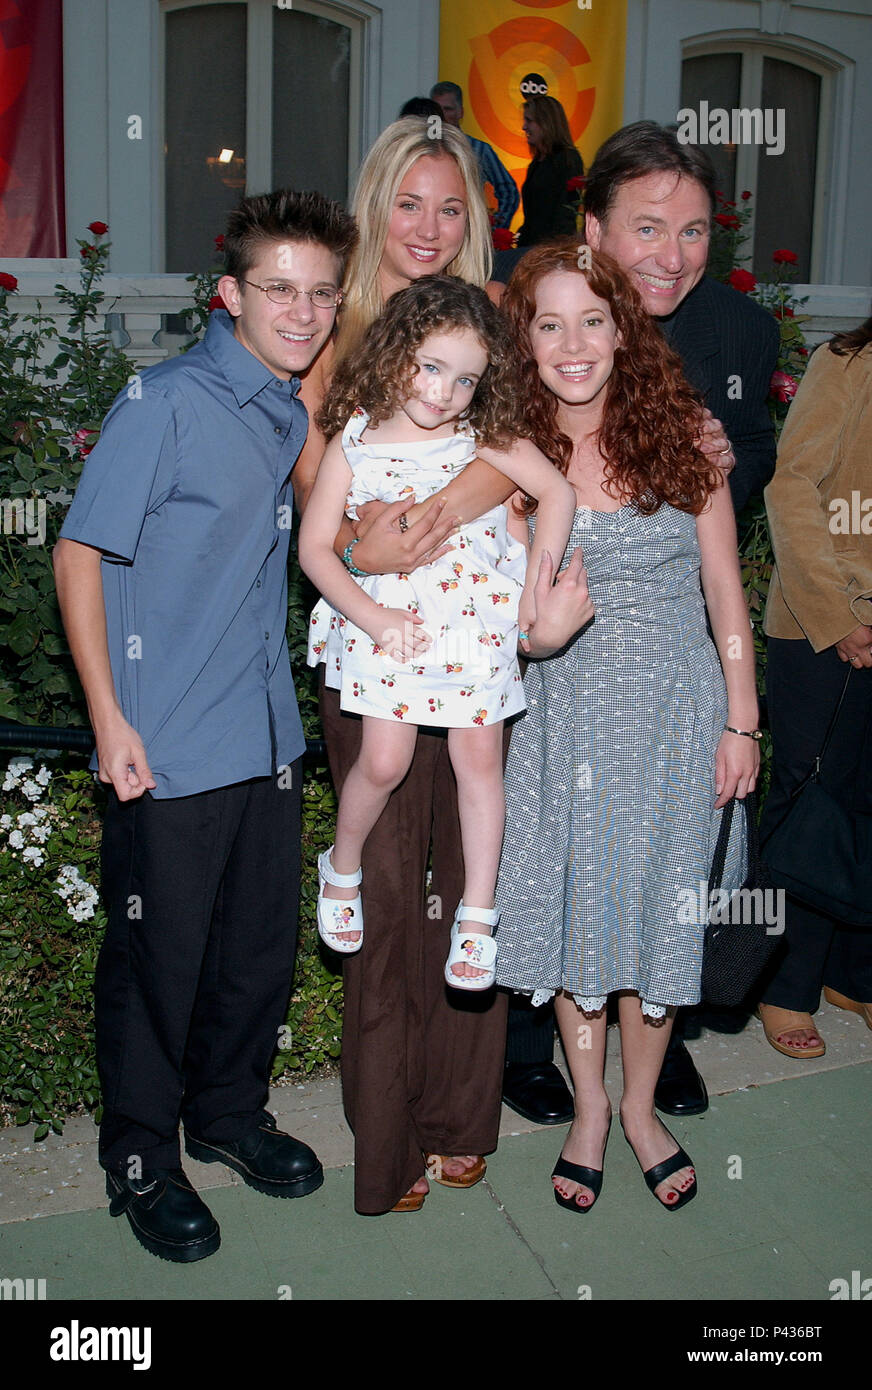 https://c8.alamy.com/comp/P436BT/john-ritter-kaley-cuoco-martin-spangers-amy-davidson-and-stella-ritter-arriving-at-the-party-for-the-2002-abc-summer-press-tour-all-star-at-the-tournament-house-in-pasadena-los-angeles-july-18-2002-8simplesrules-cast25jpg8simplesrules-cast25-event-in-hollywood-life-california-red-carpet-event-usa-film-industry-celebrities-photography-bestof-arts-culture-and-entertainment-topix-celebrities-fashion-best-of-hollywood-life-event-in-hollywood-life-california-red-carpet-and-backstage-movie-celebrities-tv-celebrities-music-celebrities-topix-actor-P436BT.jpg